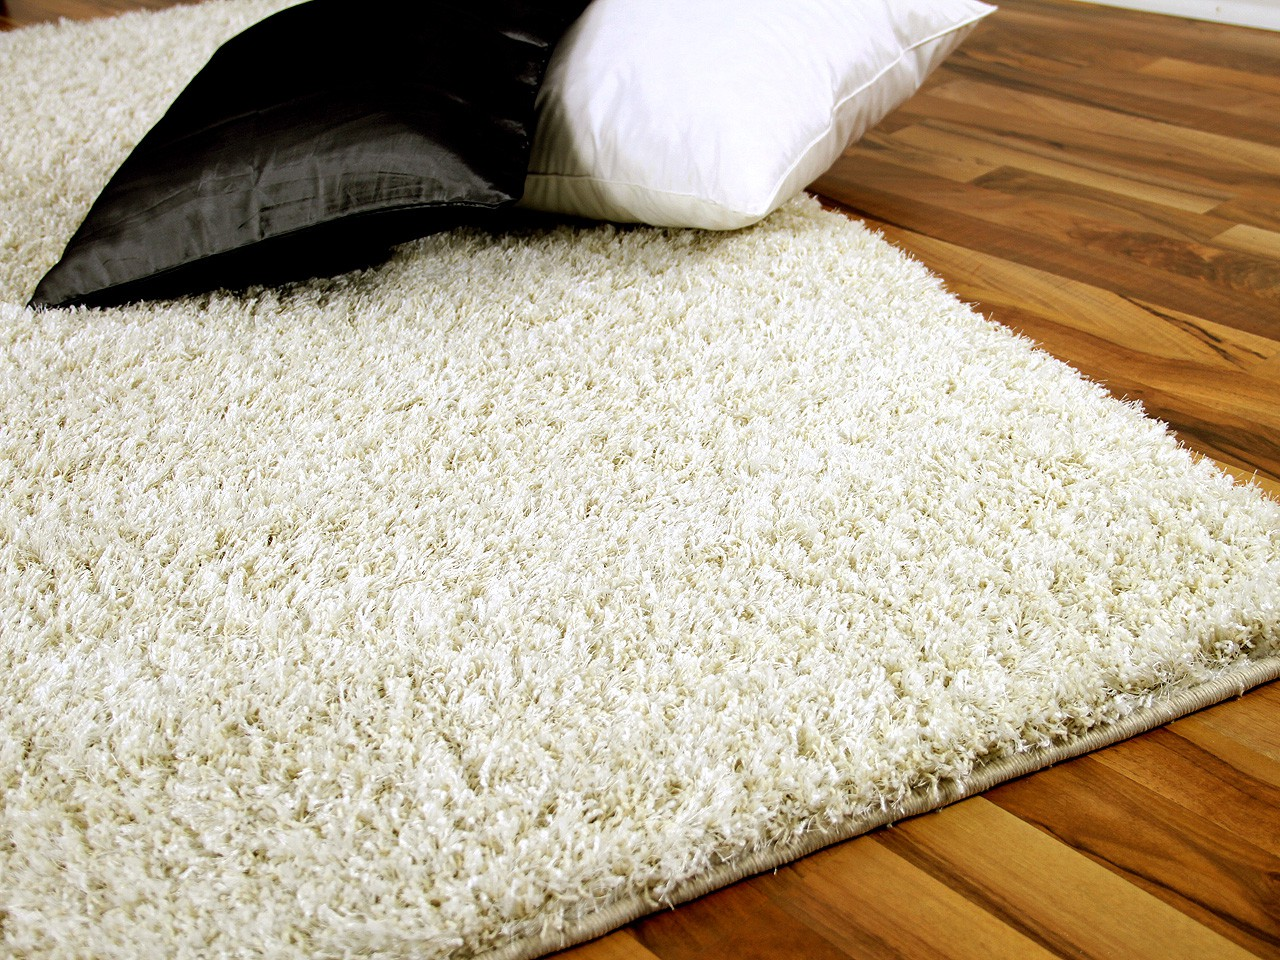 Hochflor Shaggy Teppich Luxus Feeling Mix Silber Hochflor Shaggy Teppich Luxus Feeling Mix Weiss Creme